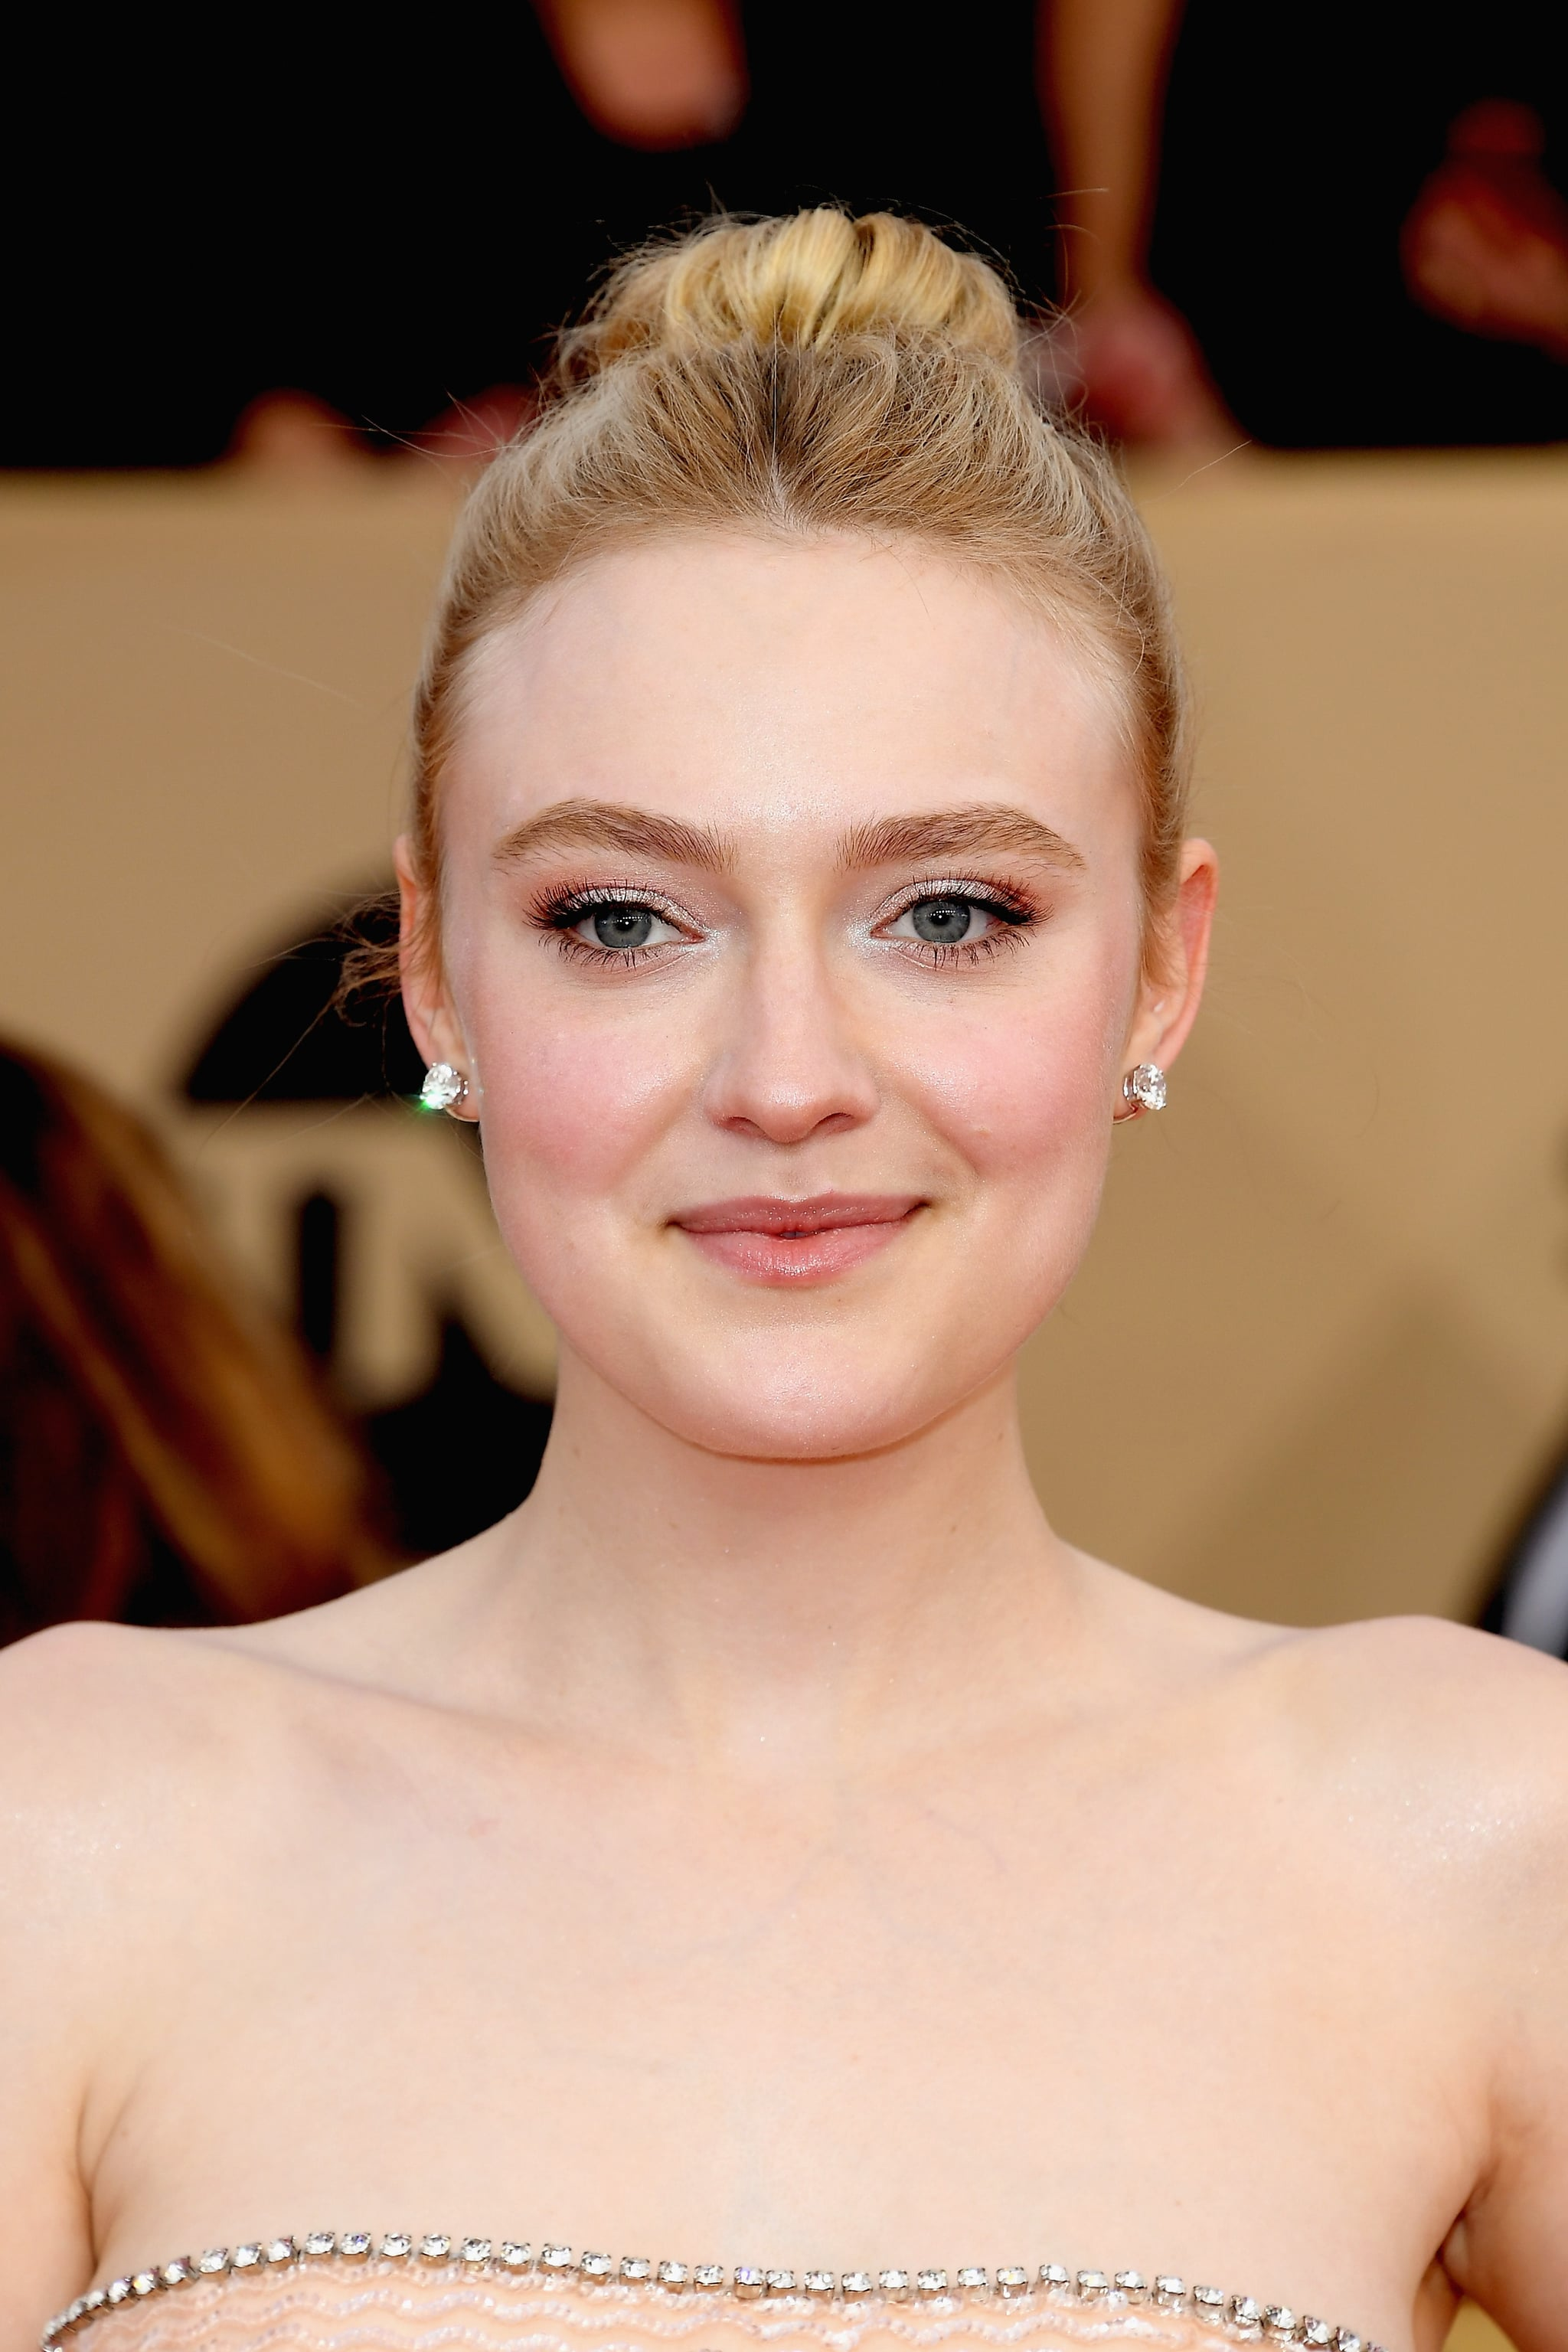 Hacked Dakota Fanning naked (84 photos), Pussy, Hot, Boobs, braless 2018